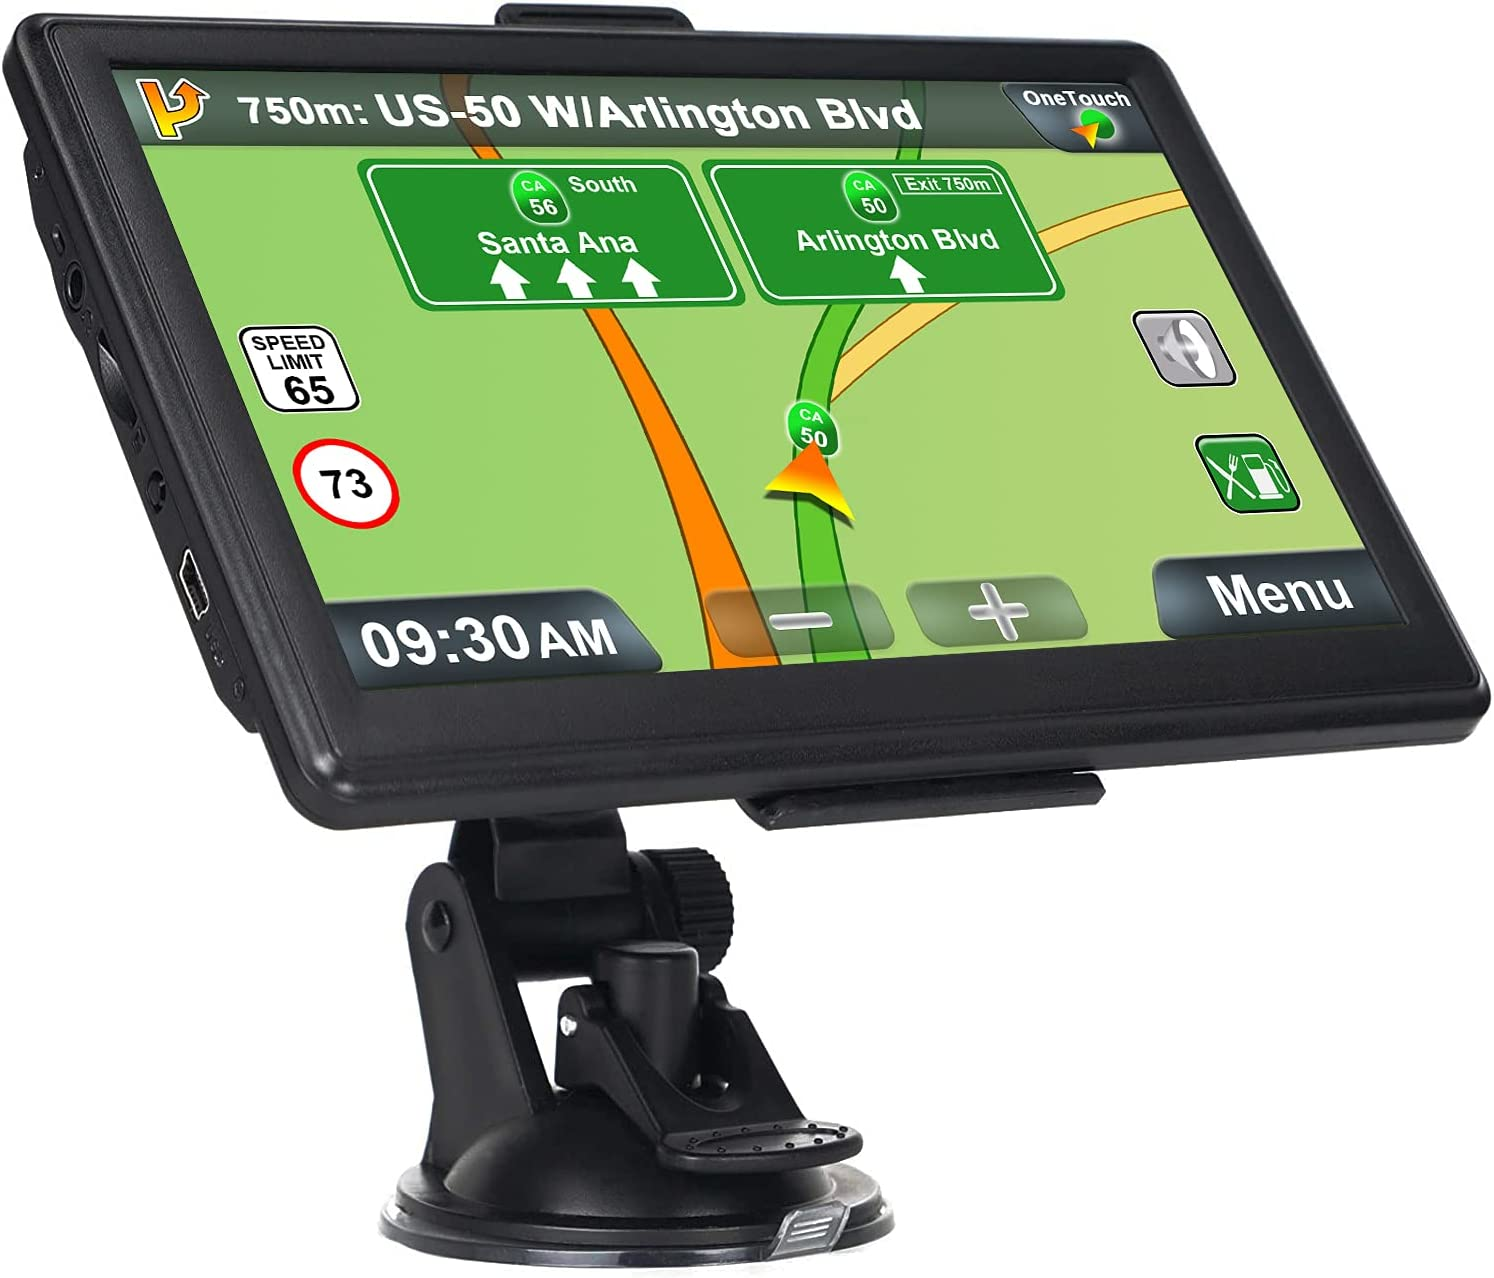 GPS Navigation for Car, Latest 2021 Map Touchscreen 7 Inch 8G 256M Navigation System with Voice Guidance and Speed Camera Warning, Lifetime Free Map Update: GPS & Navigation